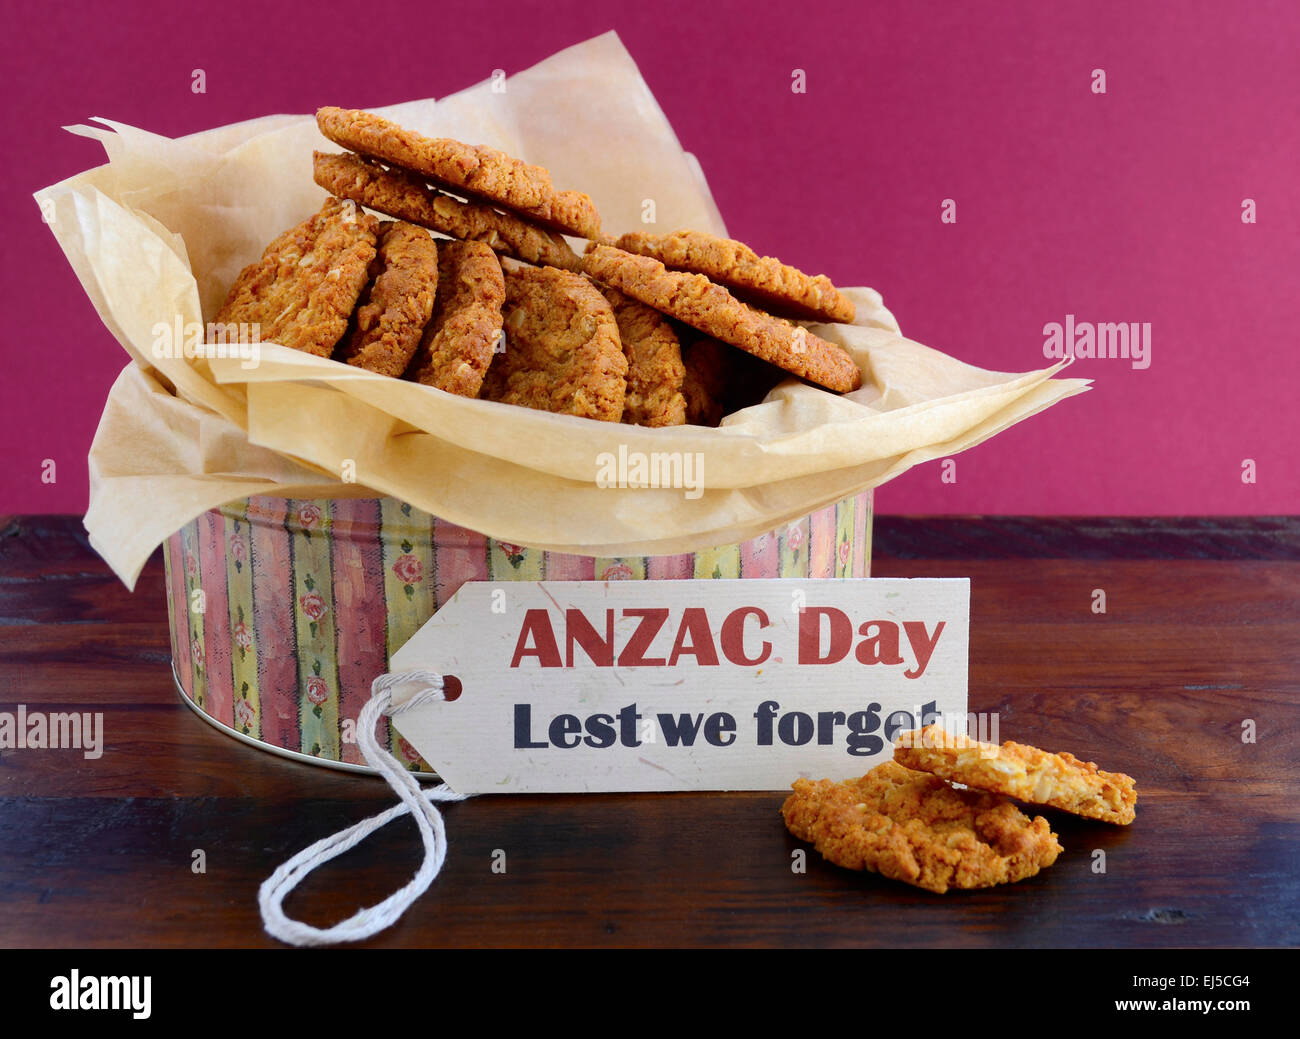 Australian Anzac biscuits in vintage biscuit tin container with Lest We Forget message. - Stock Image